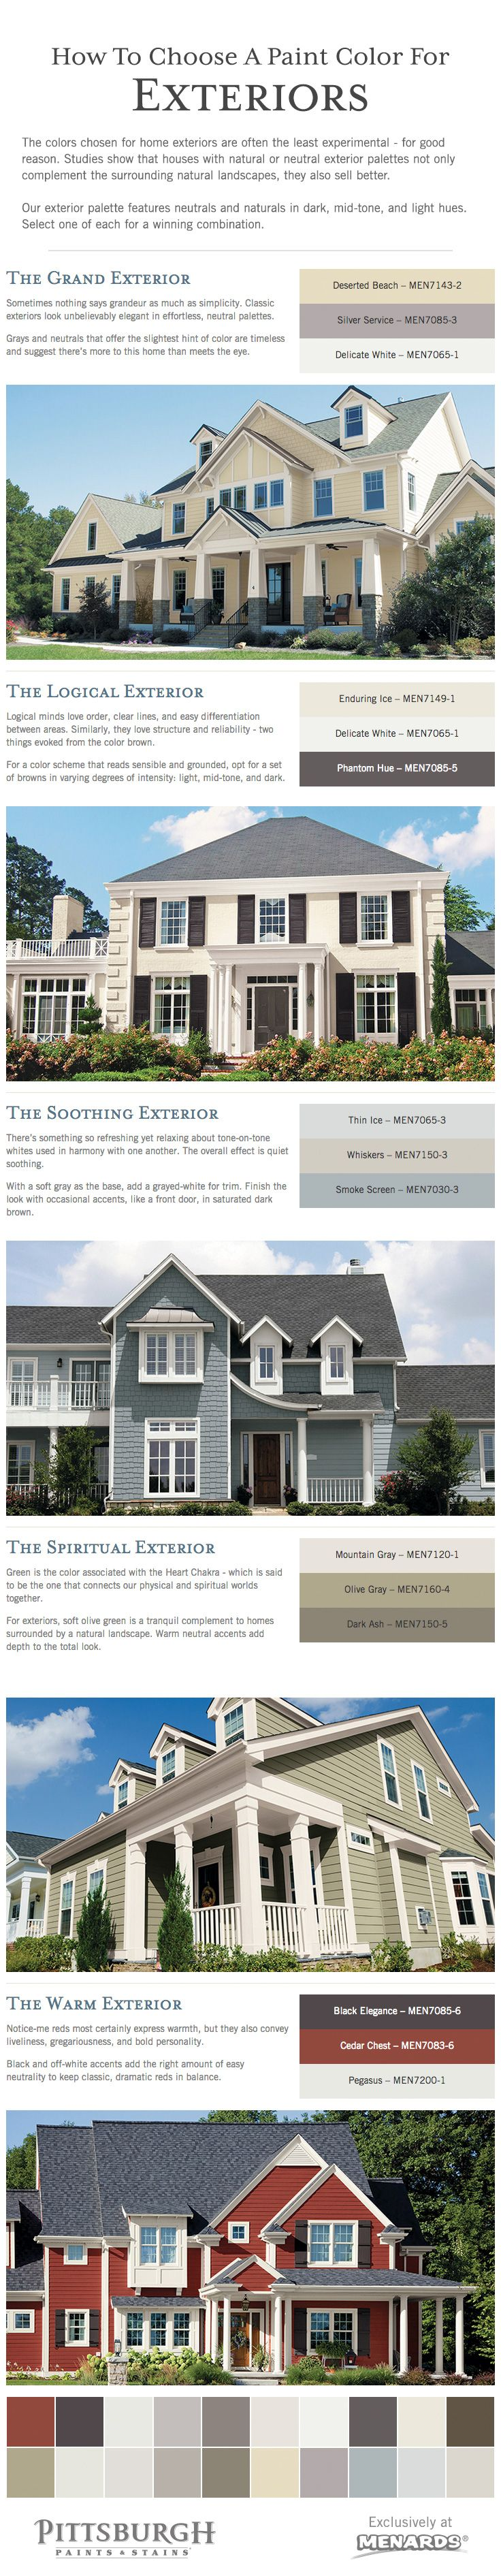 How To Choose An Exterior Paint Color For Your Home Tips From Pittsburgh  Paints U0026 Stains® At Menards®! Natural And Neutral Exterior Paint Color  Palettes To ...